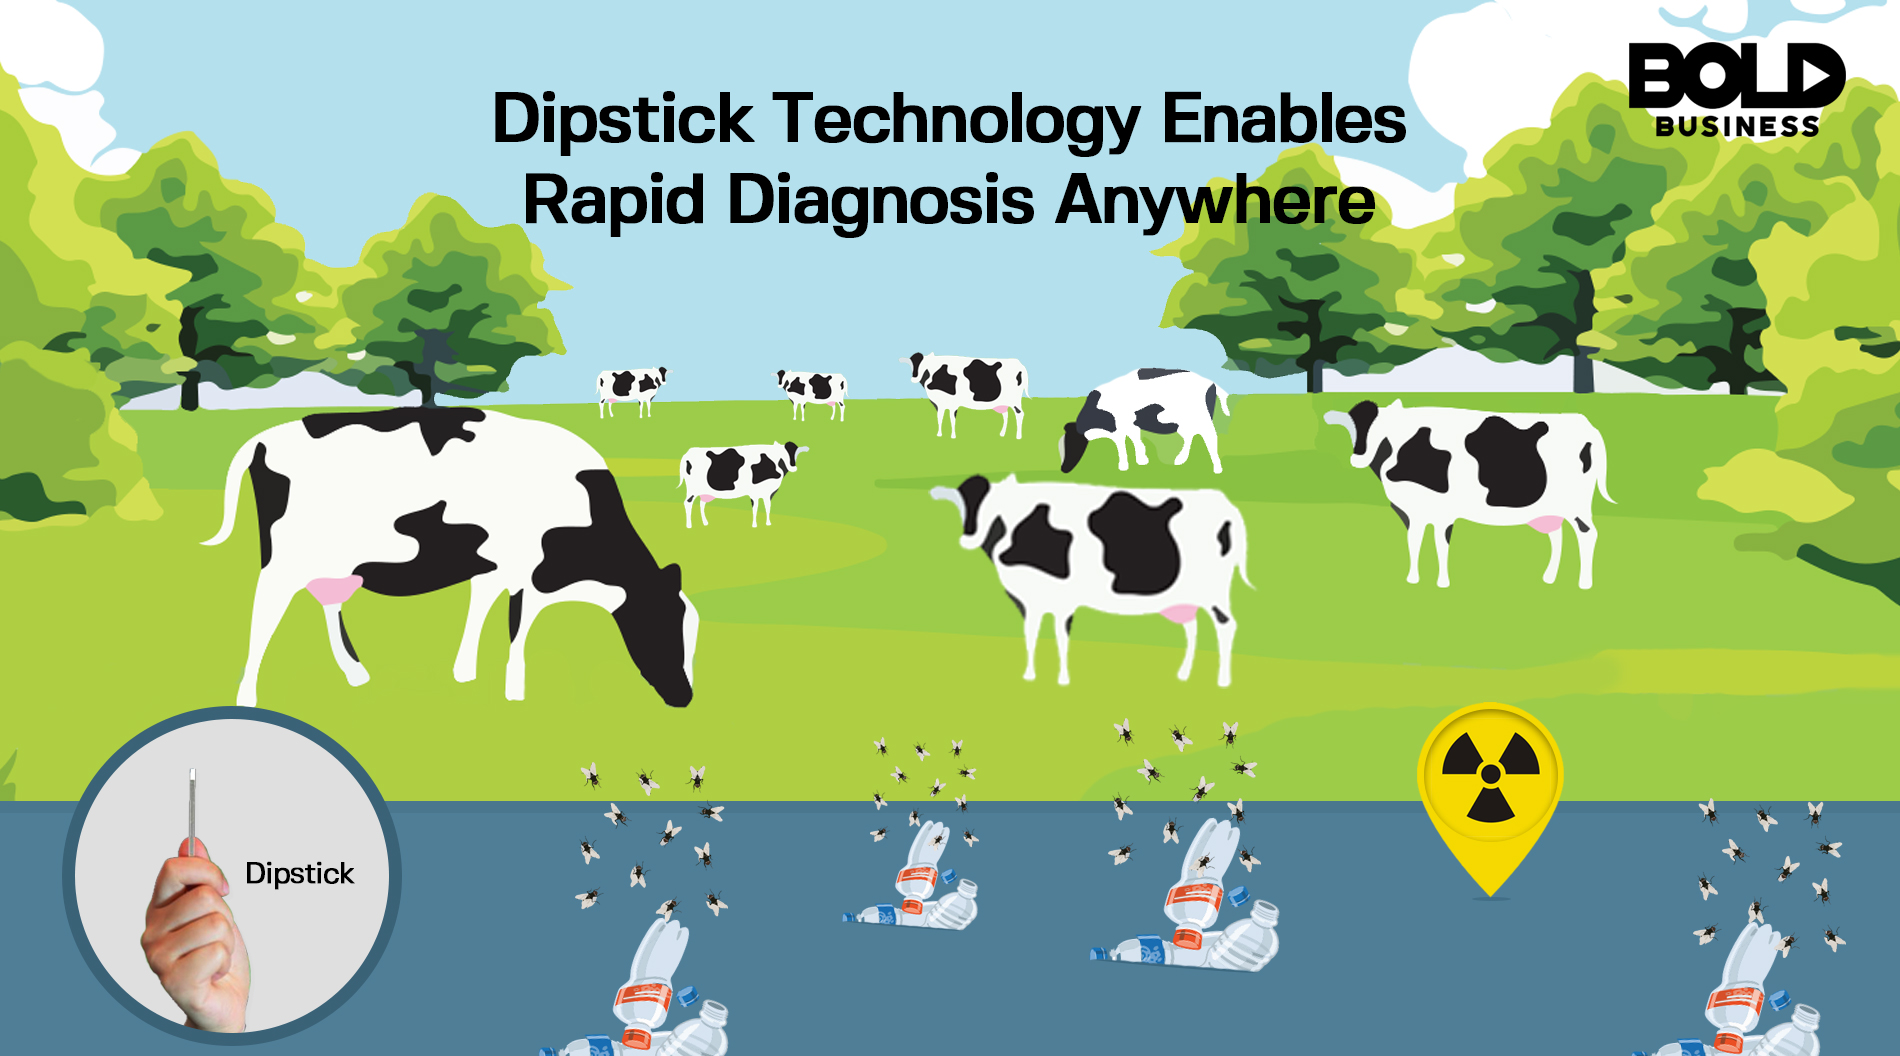 a cartoon of an open field with eight cows grazing and a small image of a hand holding a dipstick amid the discussion of the Dipstick technology for quick DNA and RNA isolation